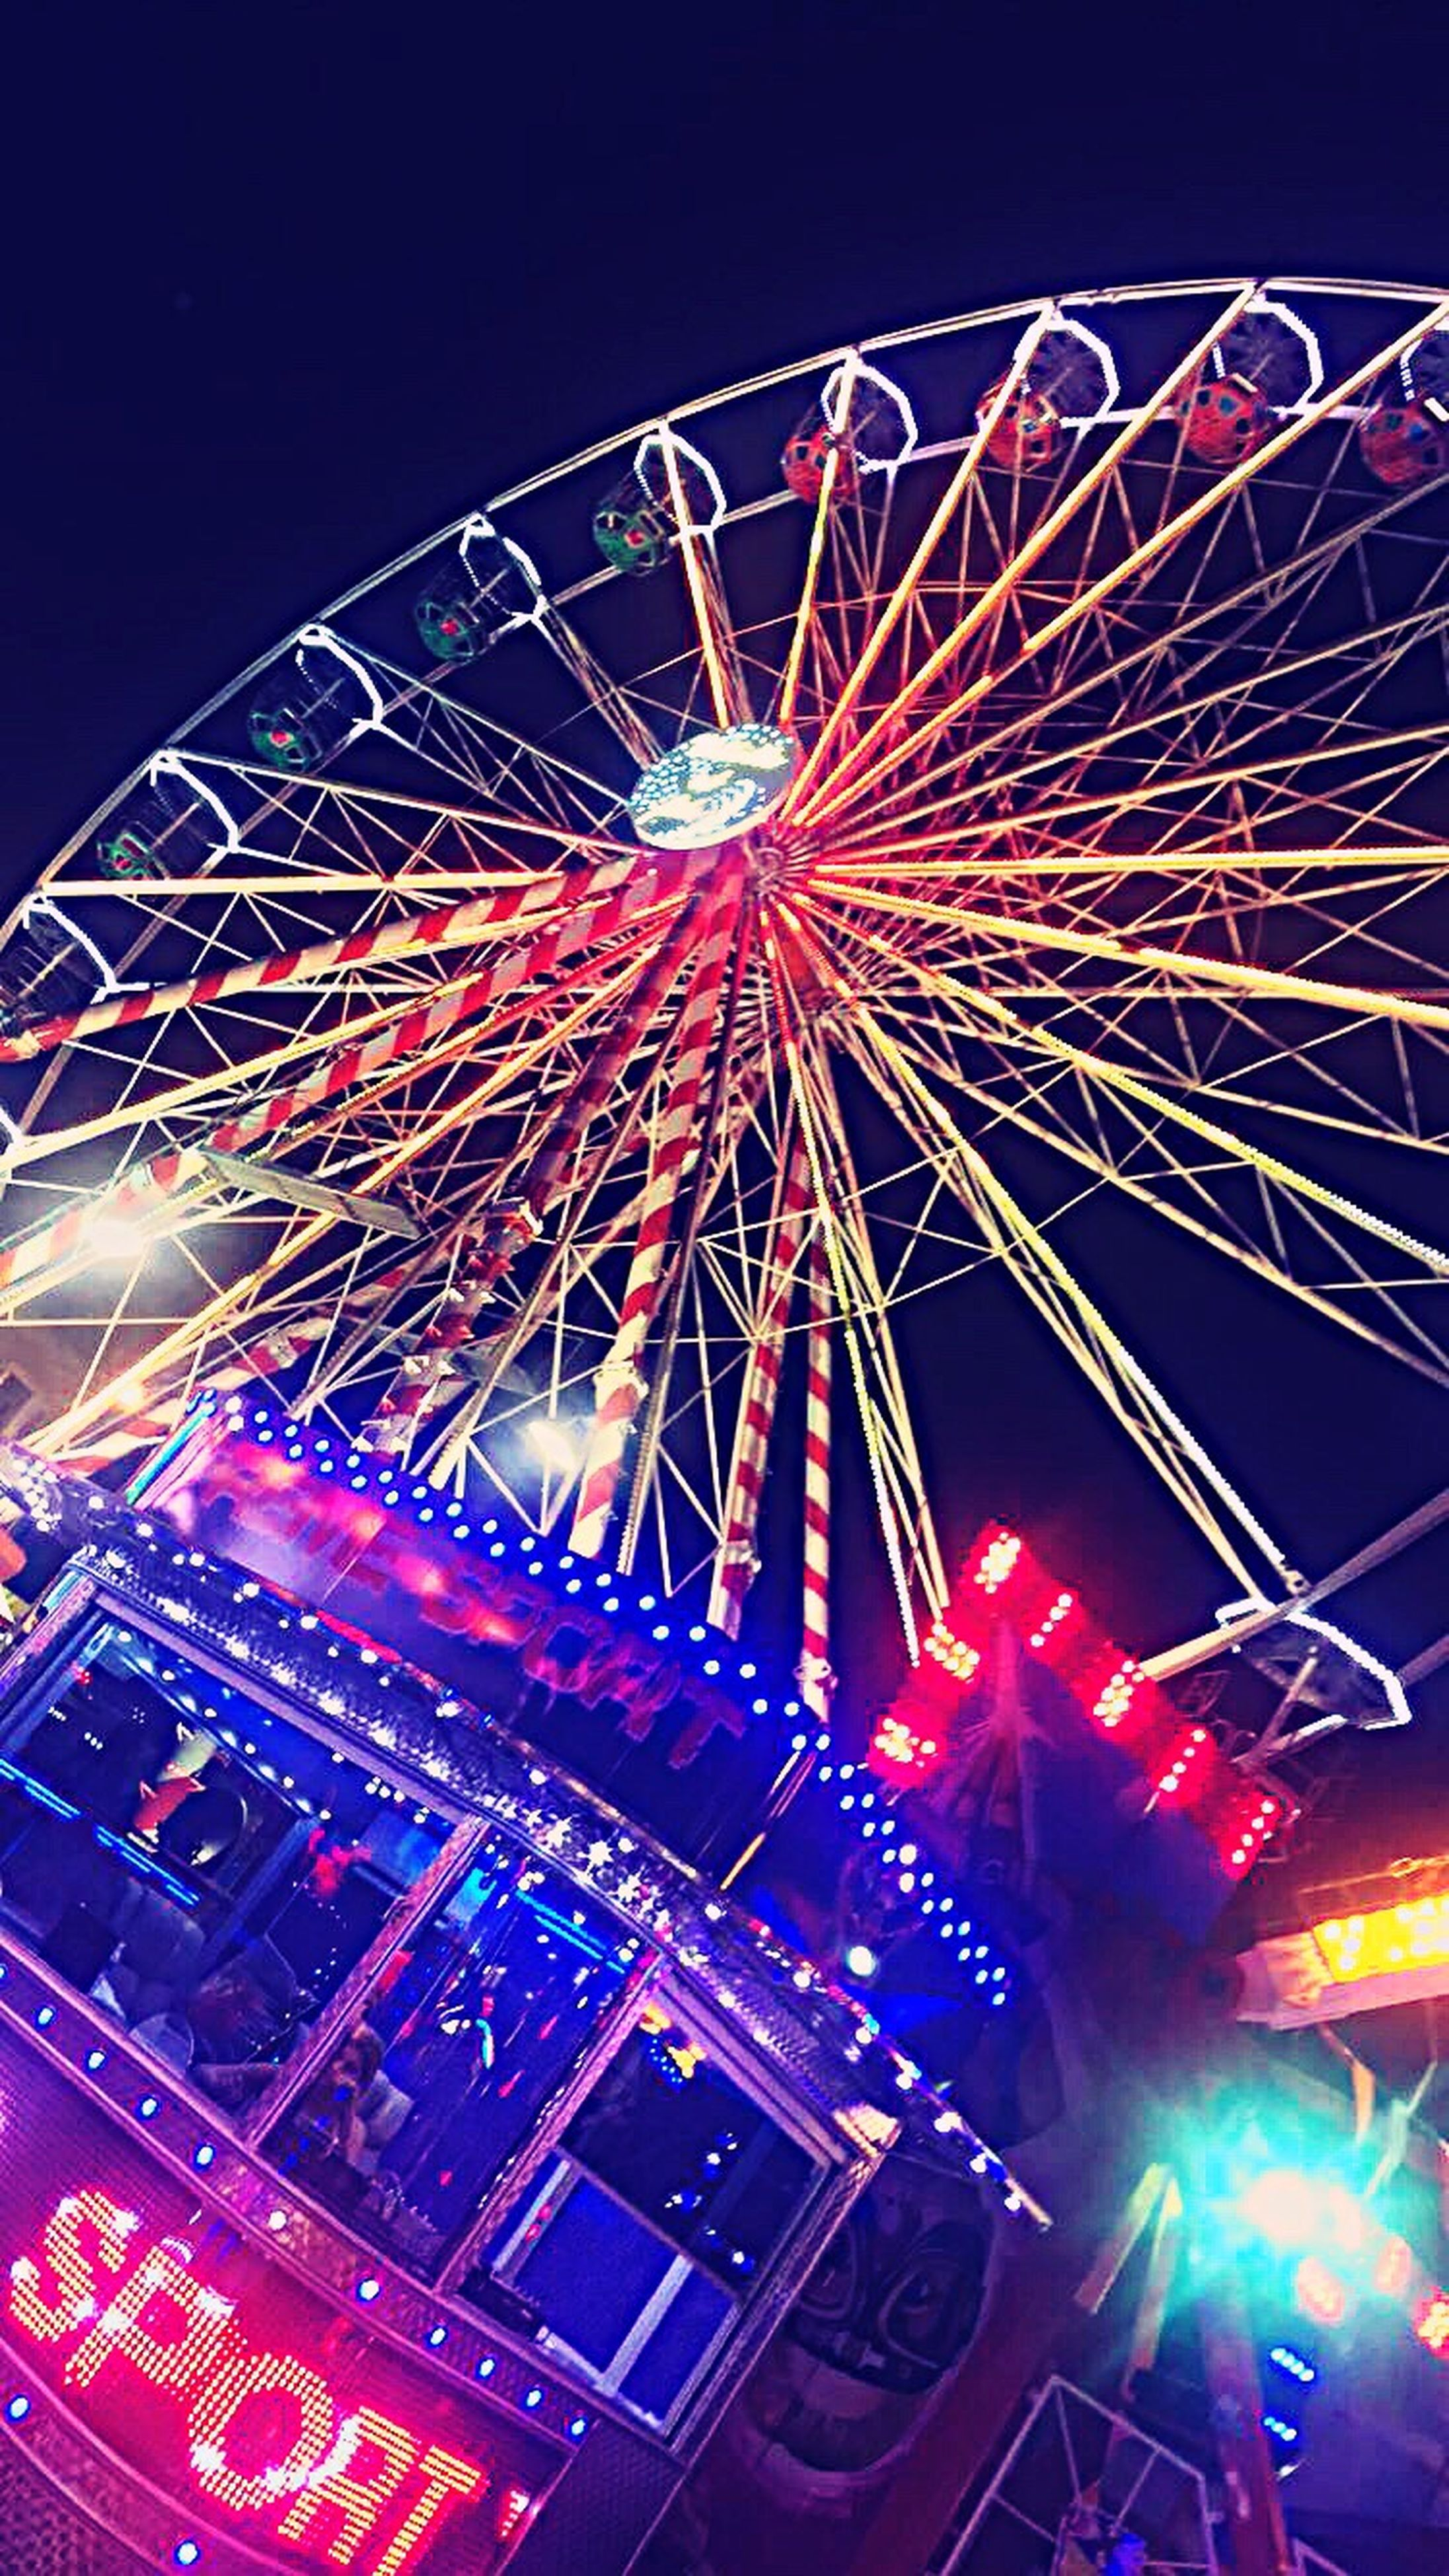 arts culture and entertainment, low angle view, night, illuminated, amusement park, amusement park ride, multi colored, motion, ferris wheel, sky, fun, travel destinations, dark, enjoyment, tourism, exploding, outdoors, colorful, bright, entertainment, nightlife, vacations, traveling carnival, no people, atmosphere, event